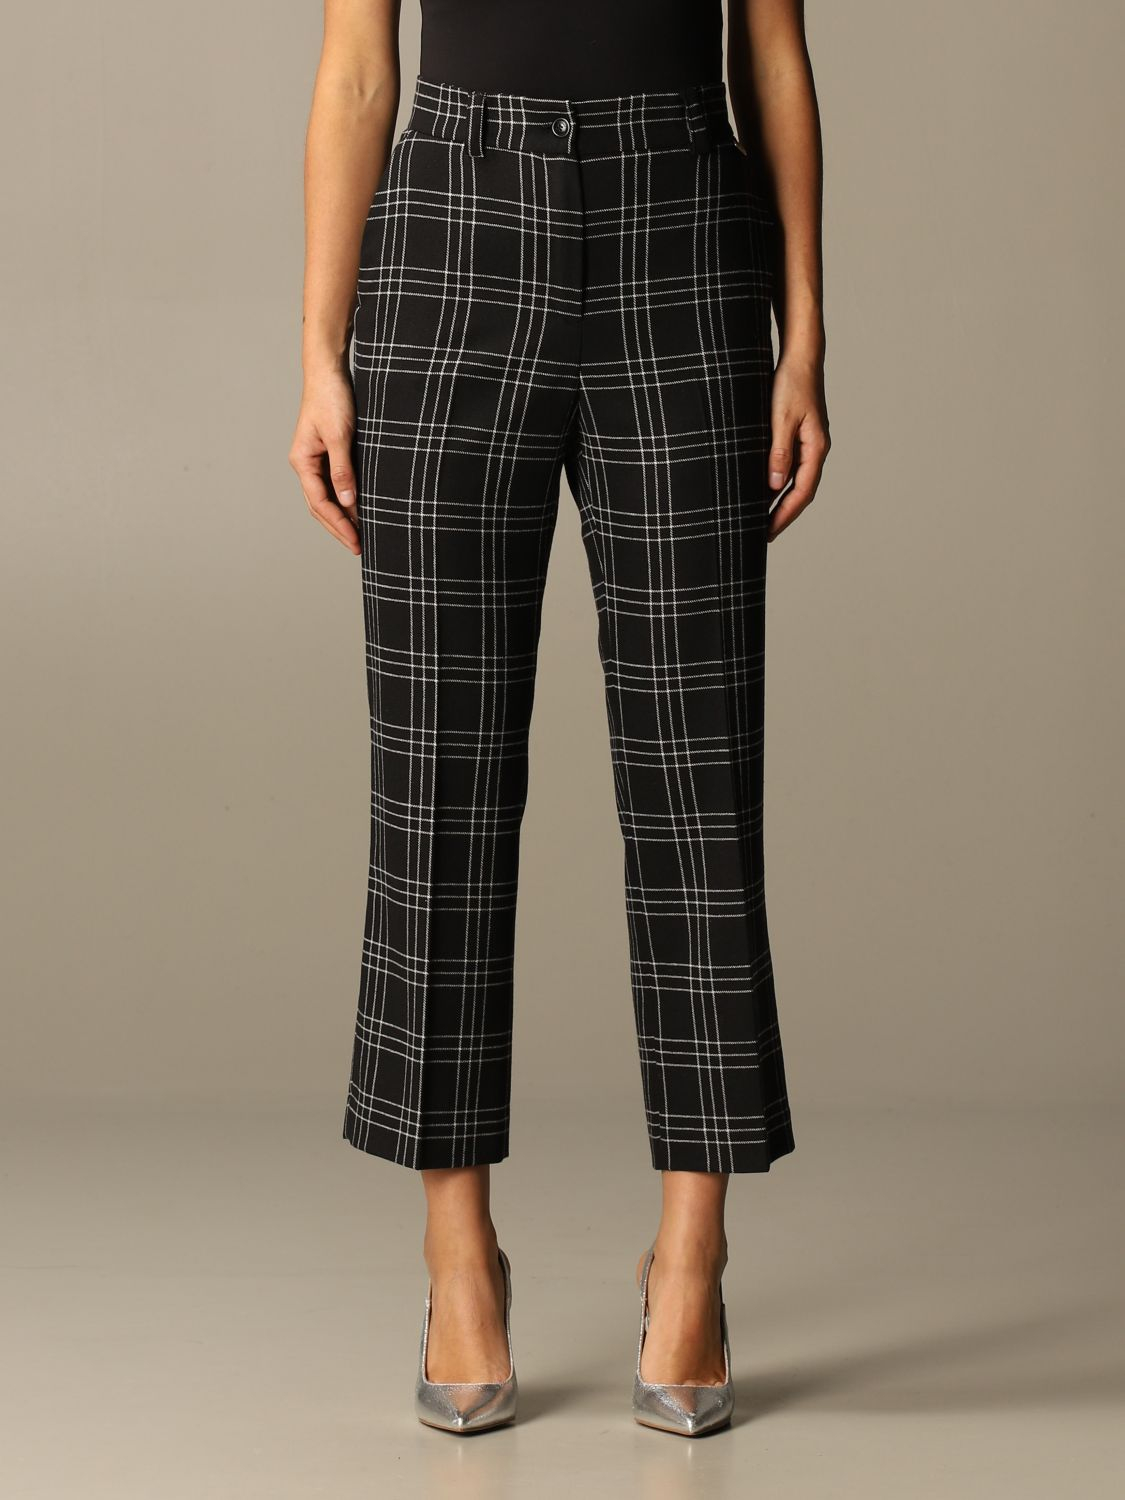 SHOPPING ON LINE TWINSET MILANO PANTALONI IN MISTO LANA STRETCH CHECK NEW COLLECTION WOMEN'S FALL WINTER 2020/2021